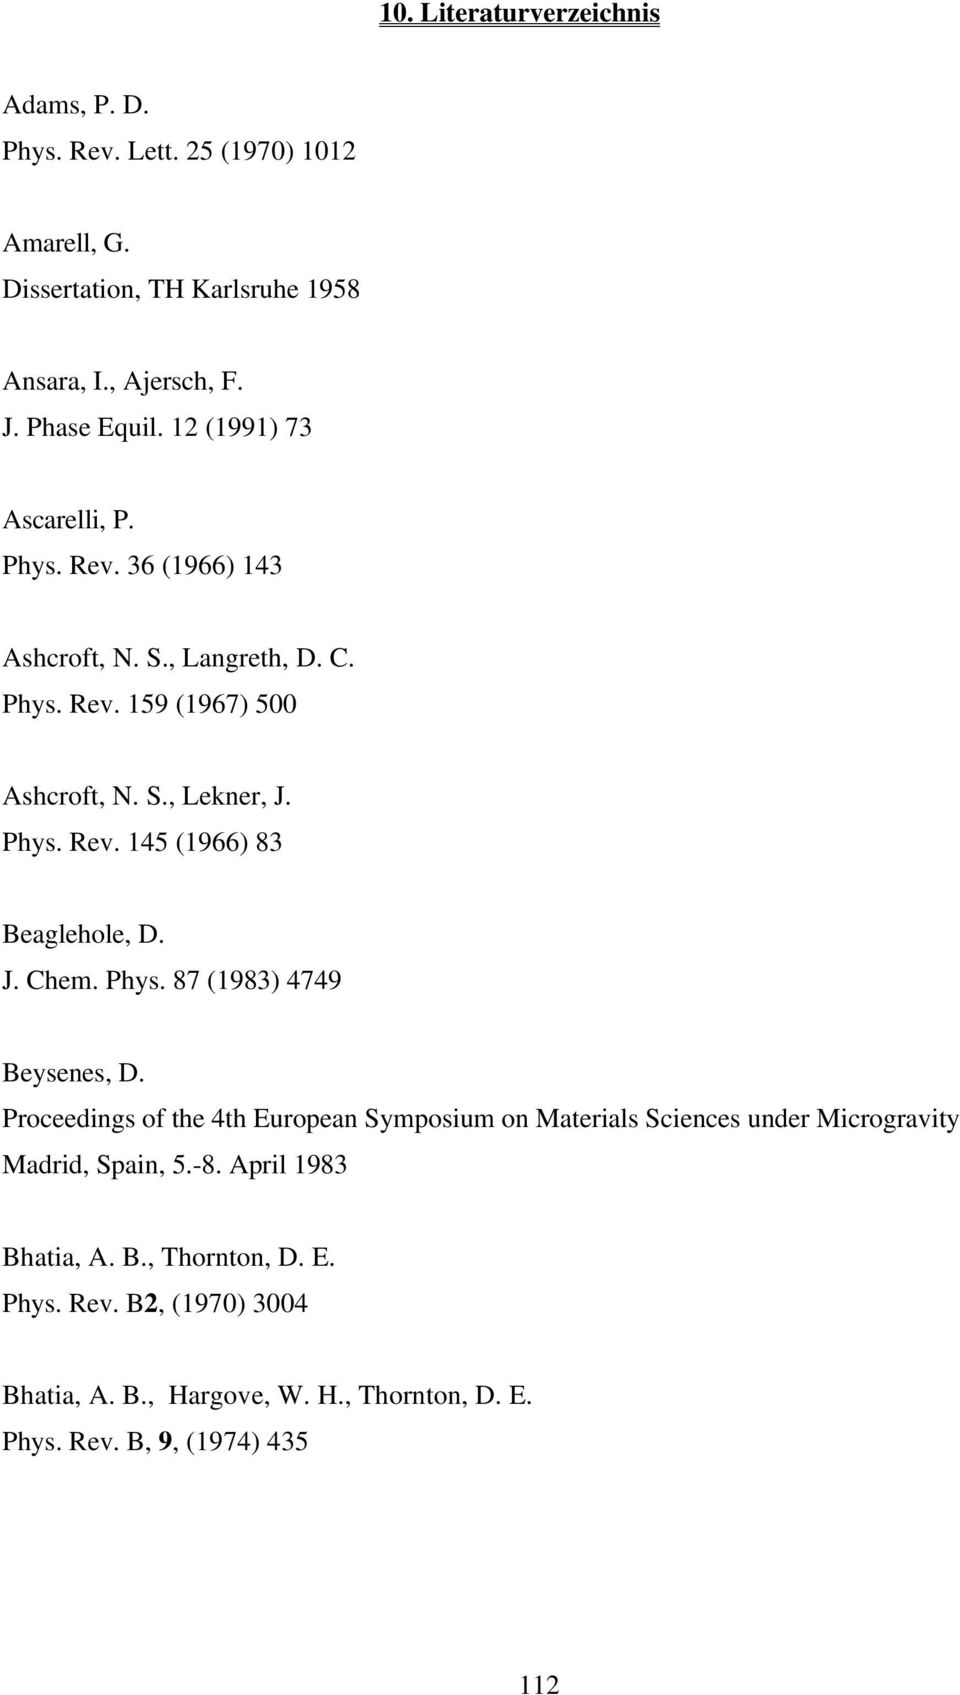 J. Chem. Phys. 87 (1983) 4749 Beysenes, D. Proceedings of the 4th European Symposium on Materials Sciences under Microgravity Madrid, Spain, 5.-8.